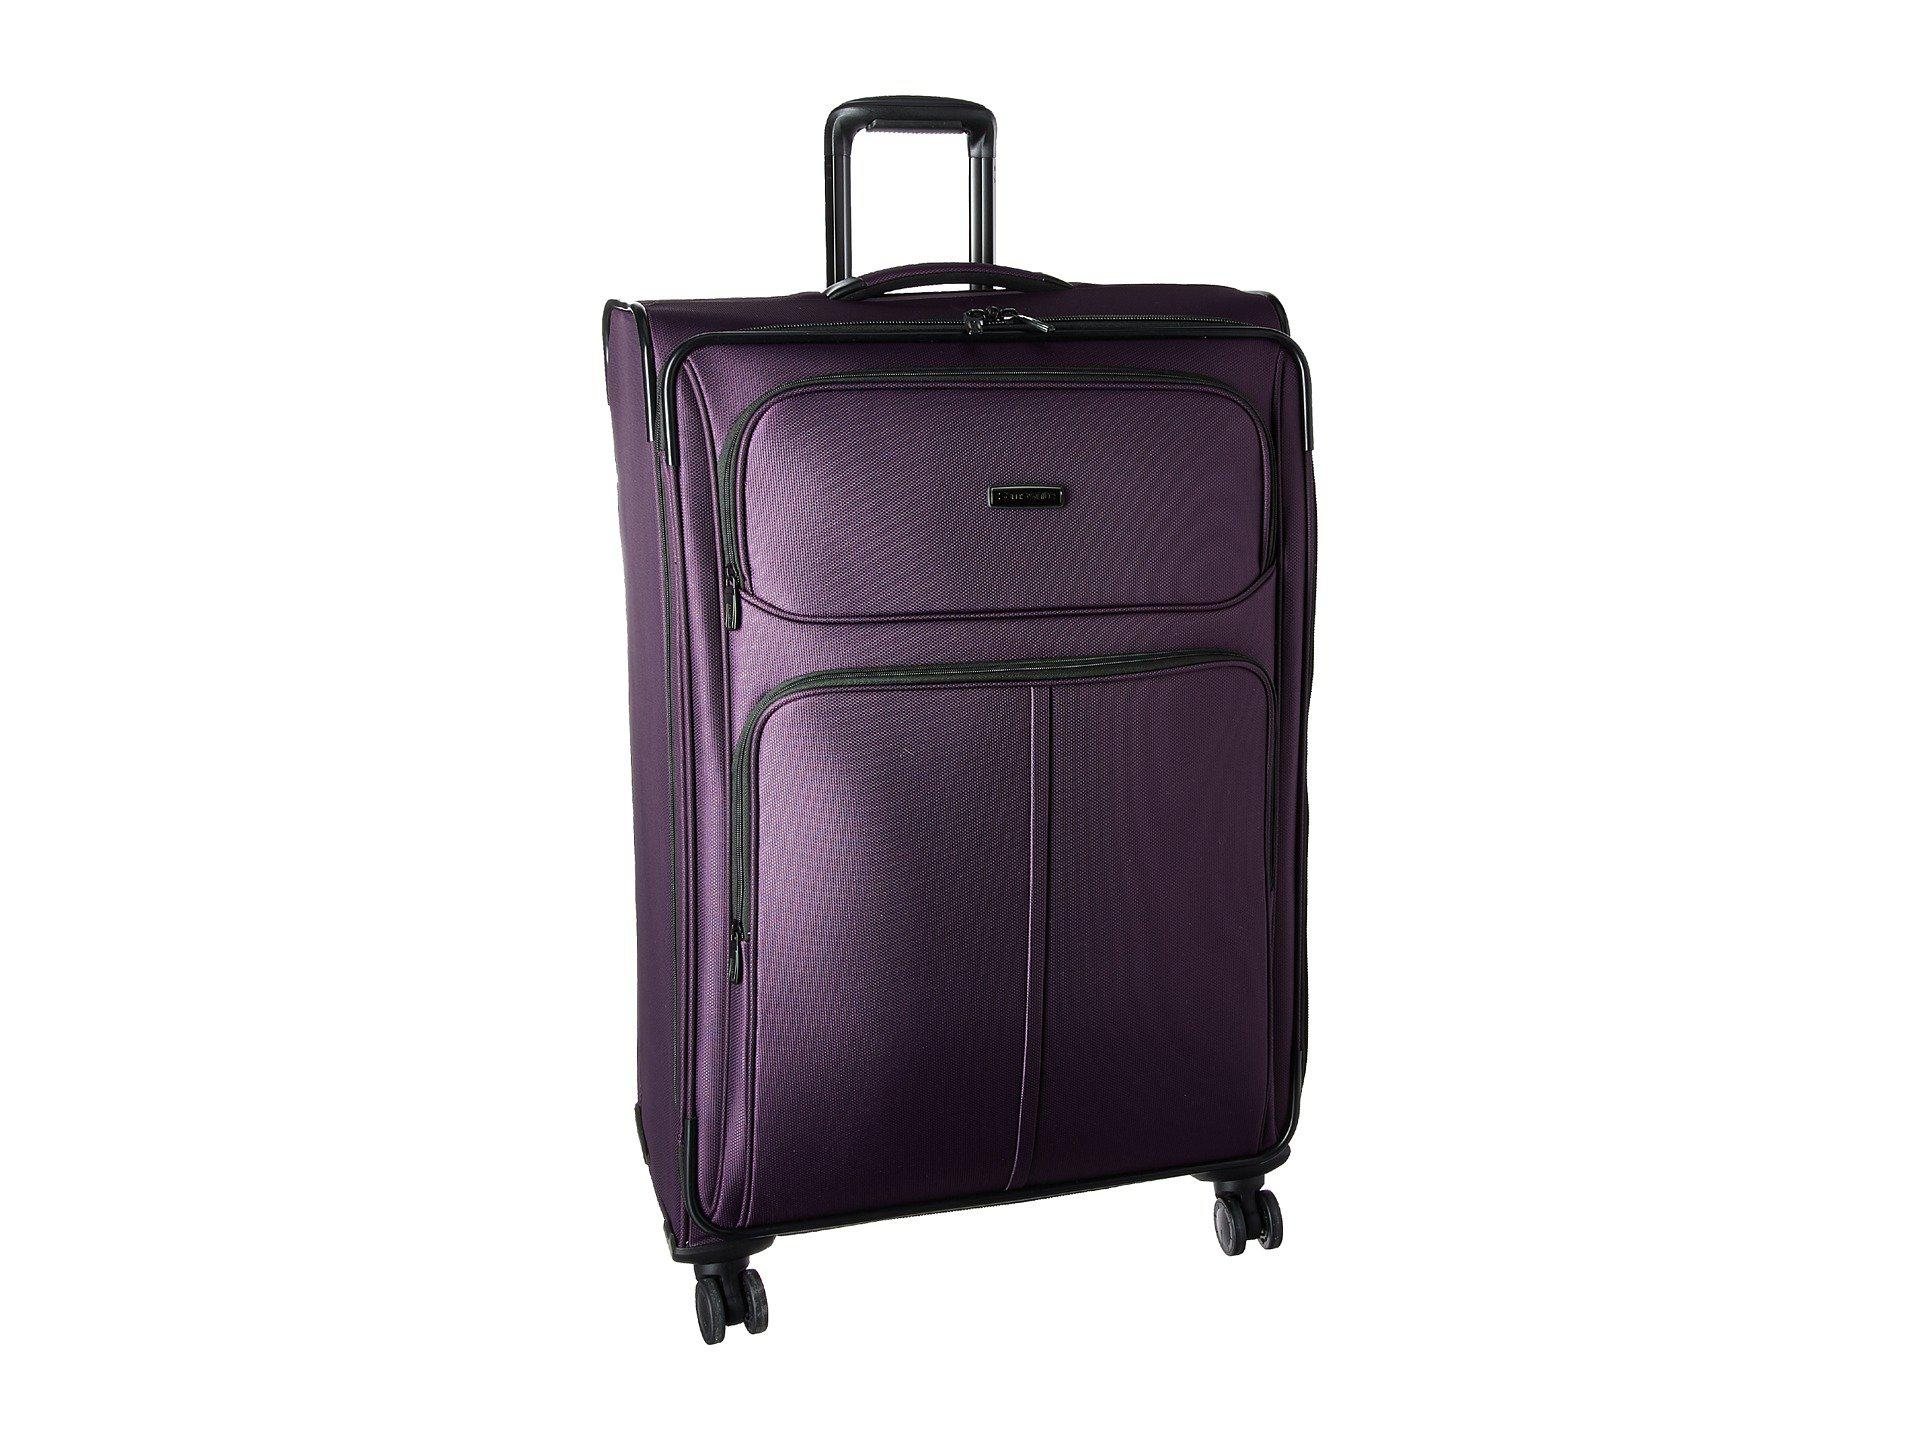 Lyst - Samsonite Leverage Lte 29 Spinner (charcoal) Luggage in ... a828a6a88cfc5